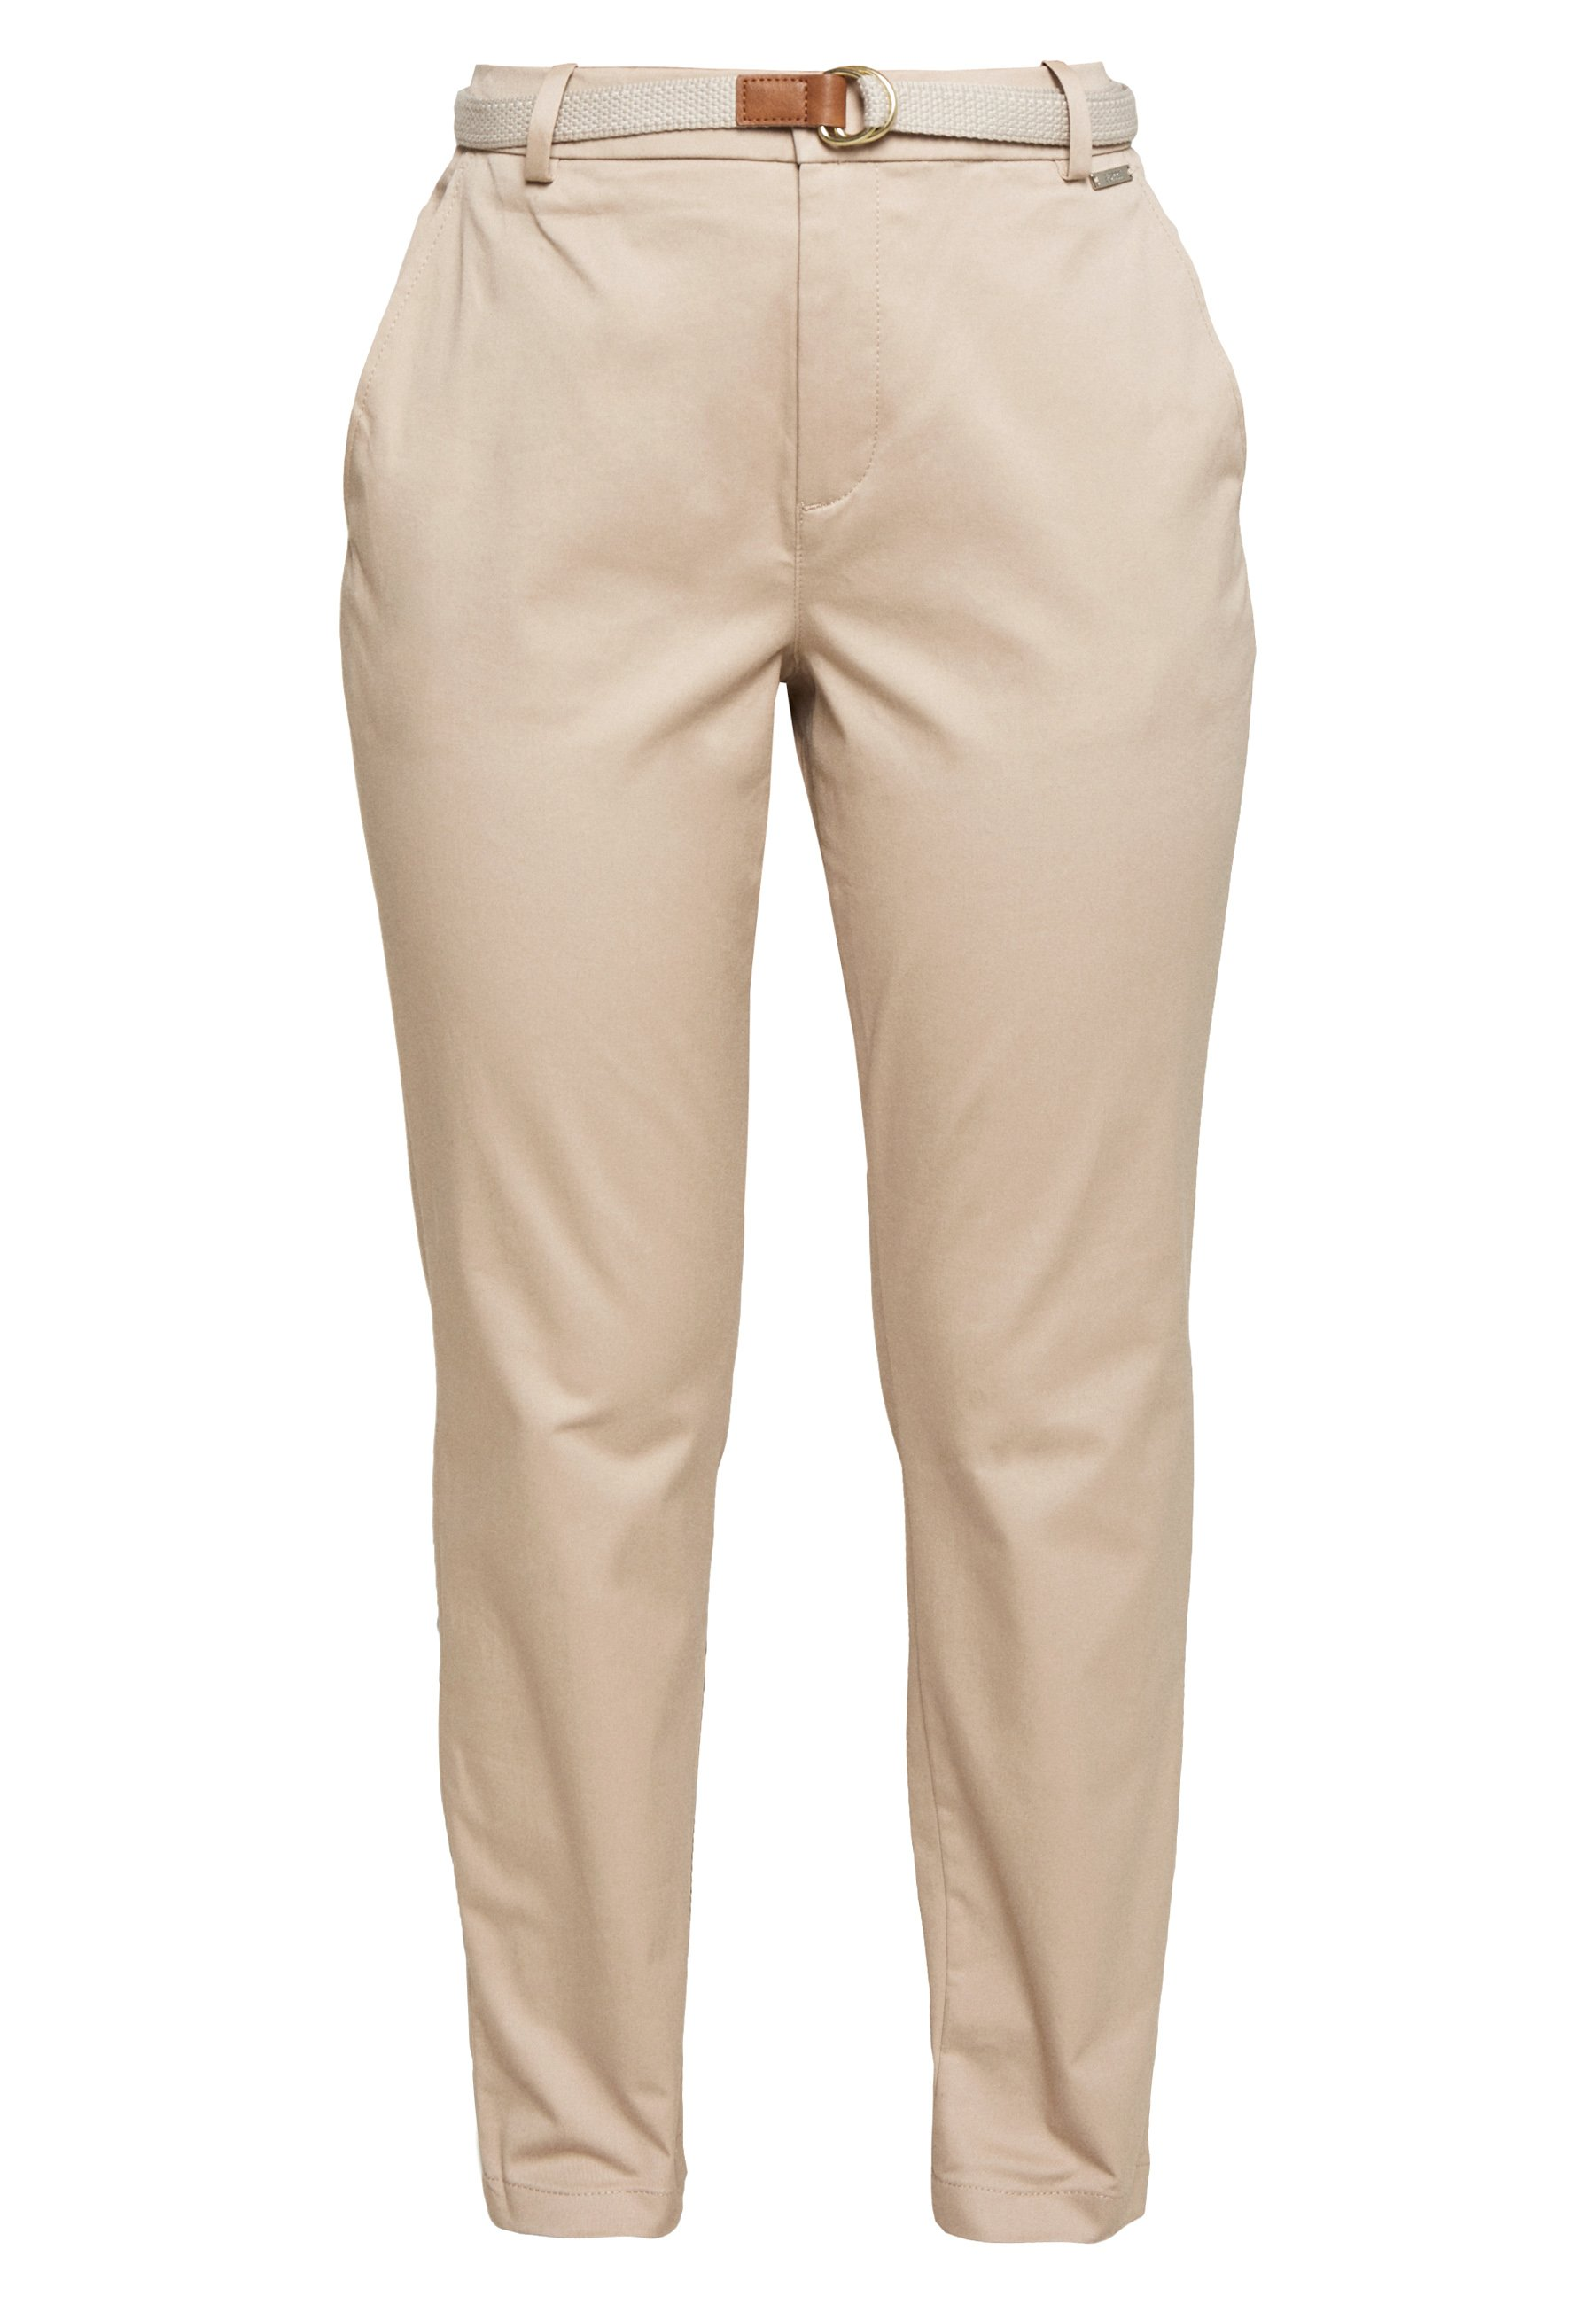 Esprit Collection Petite Chino - beige